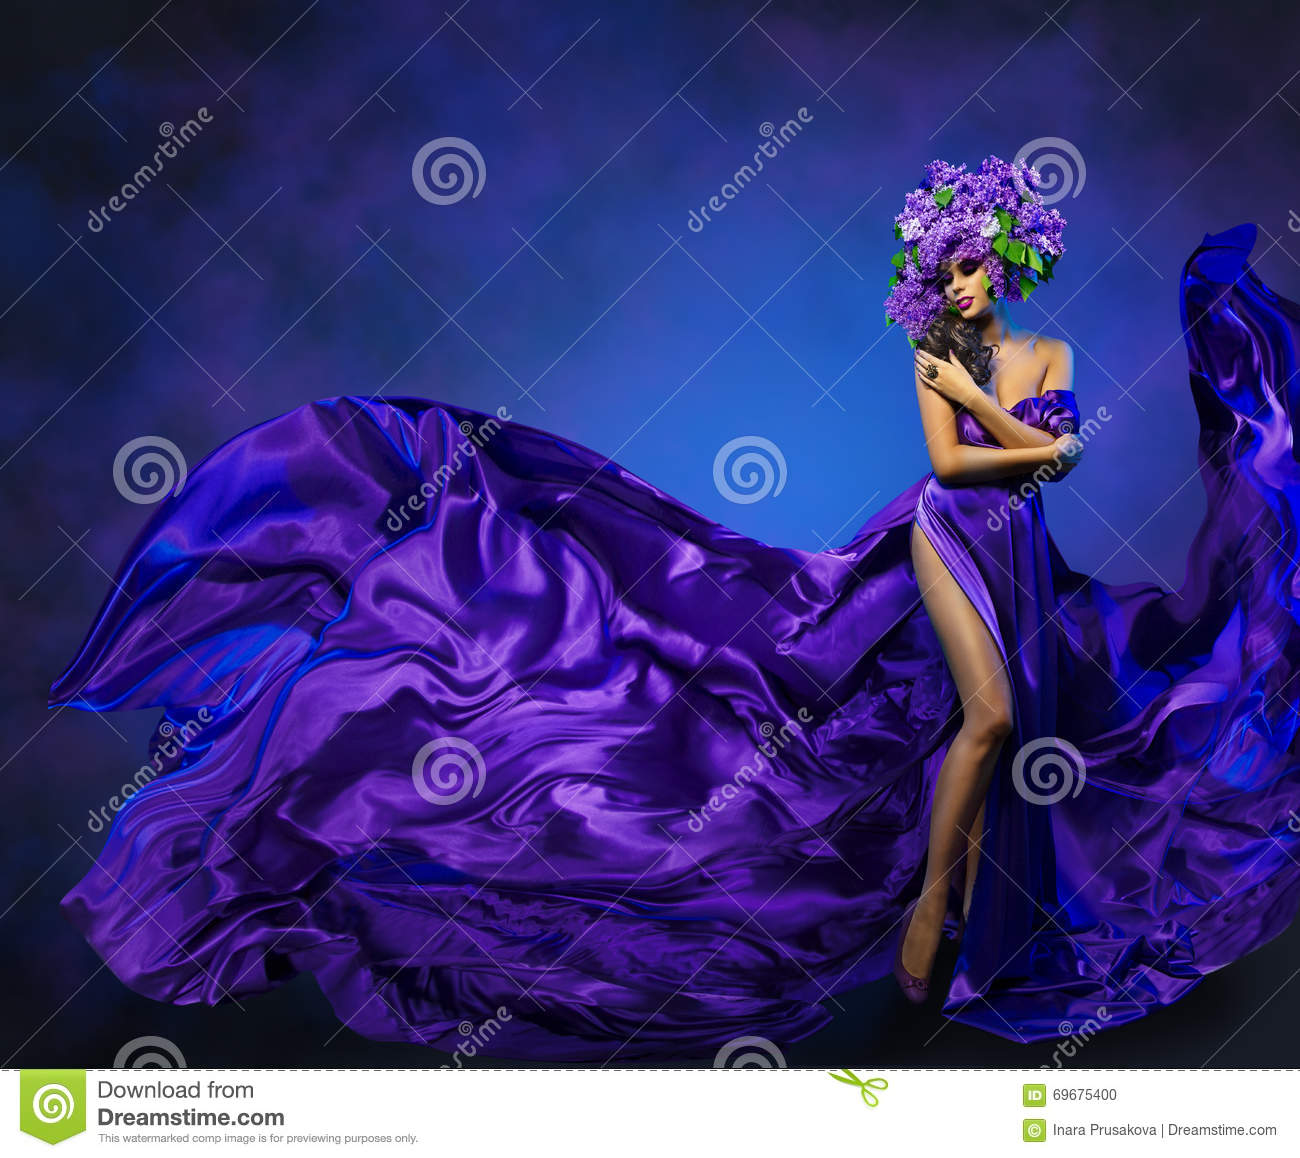 Woman Flower Dress Flying Fabric, Fashion Model in Lilac Hat